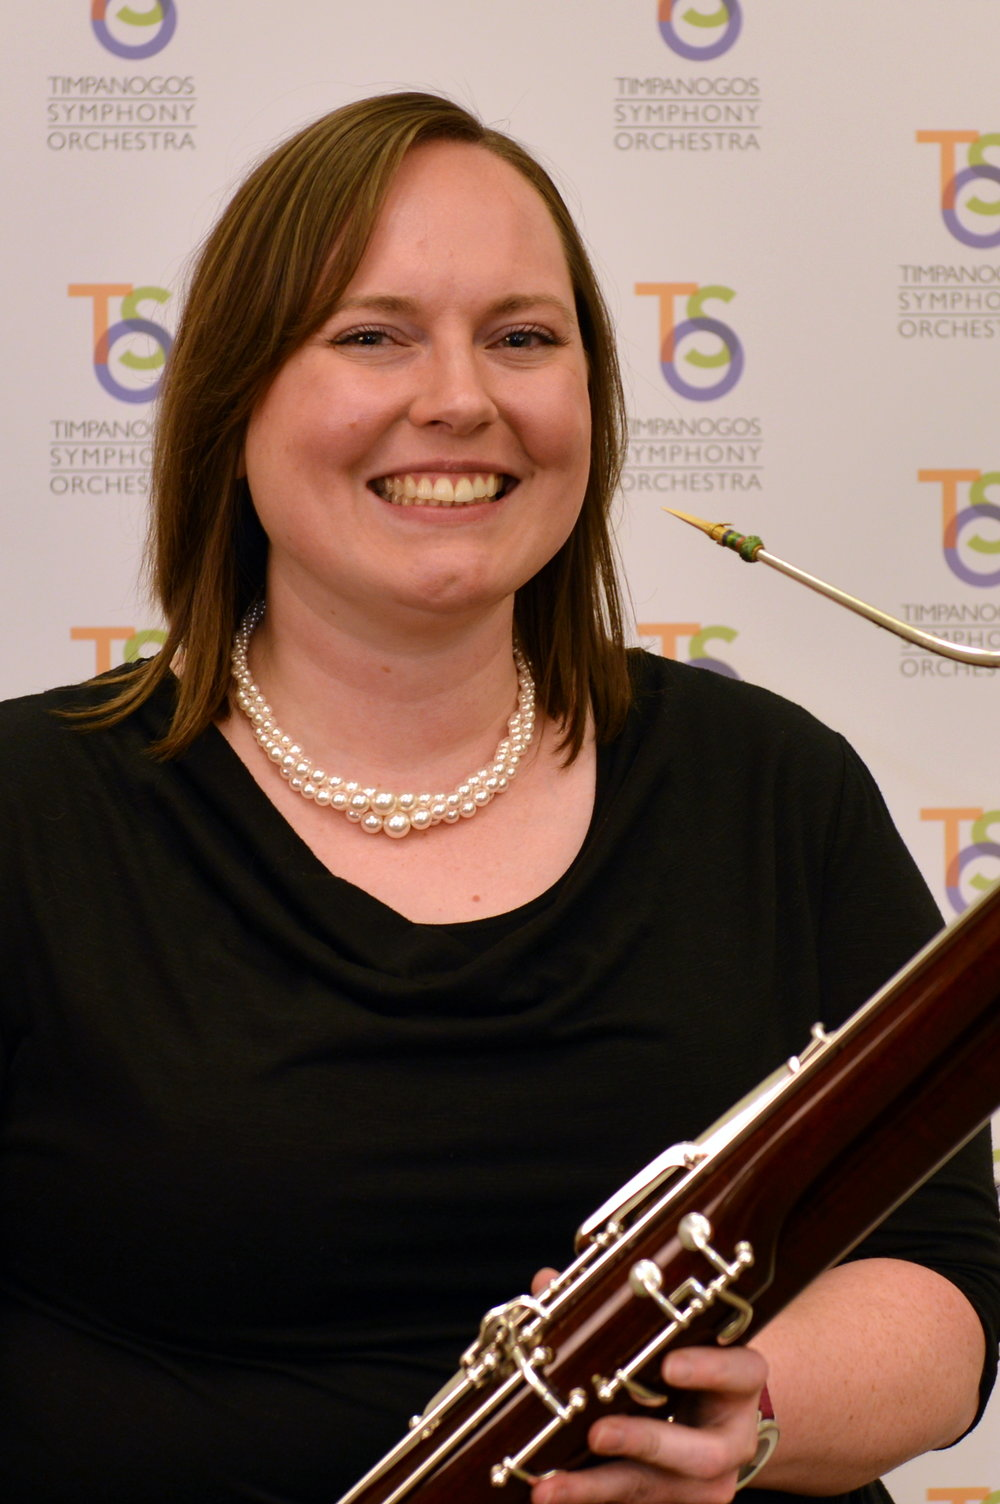 Christine Roach, 2nd Bassoon